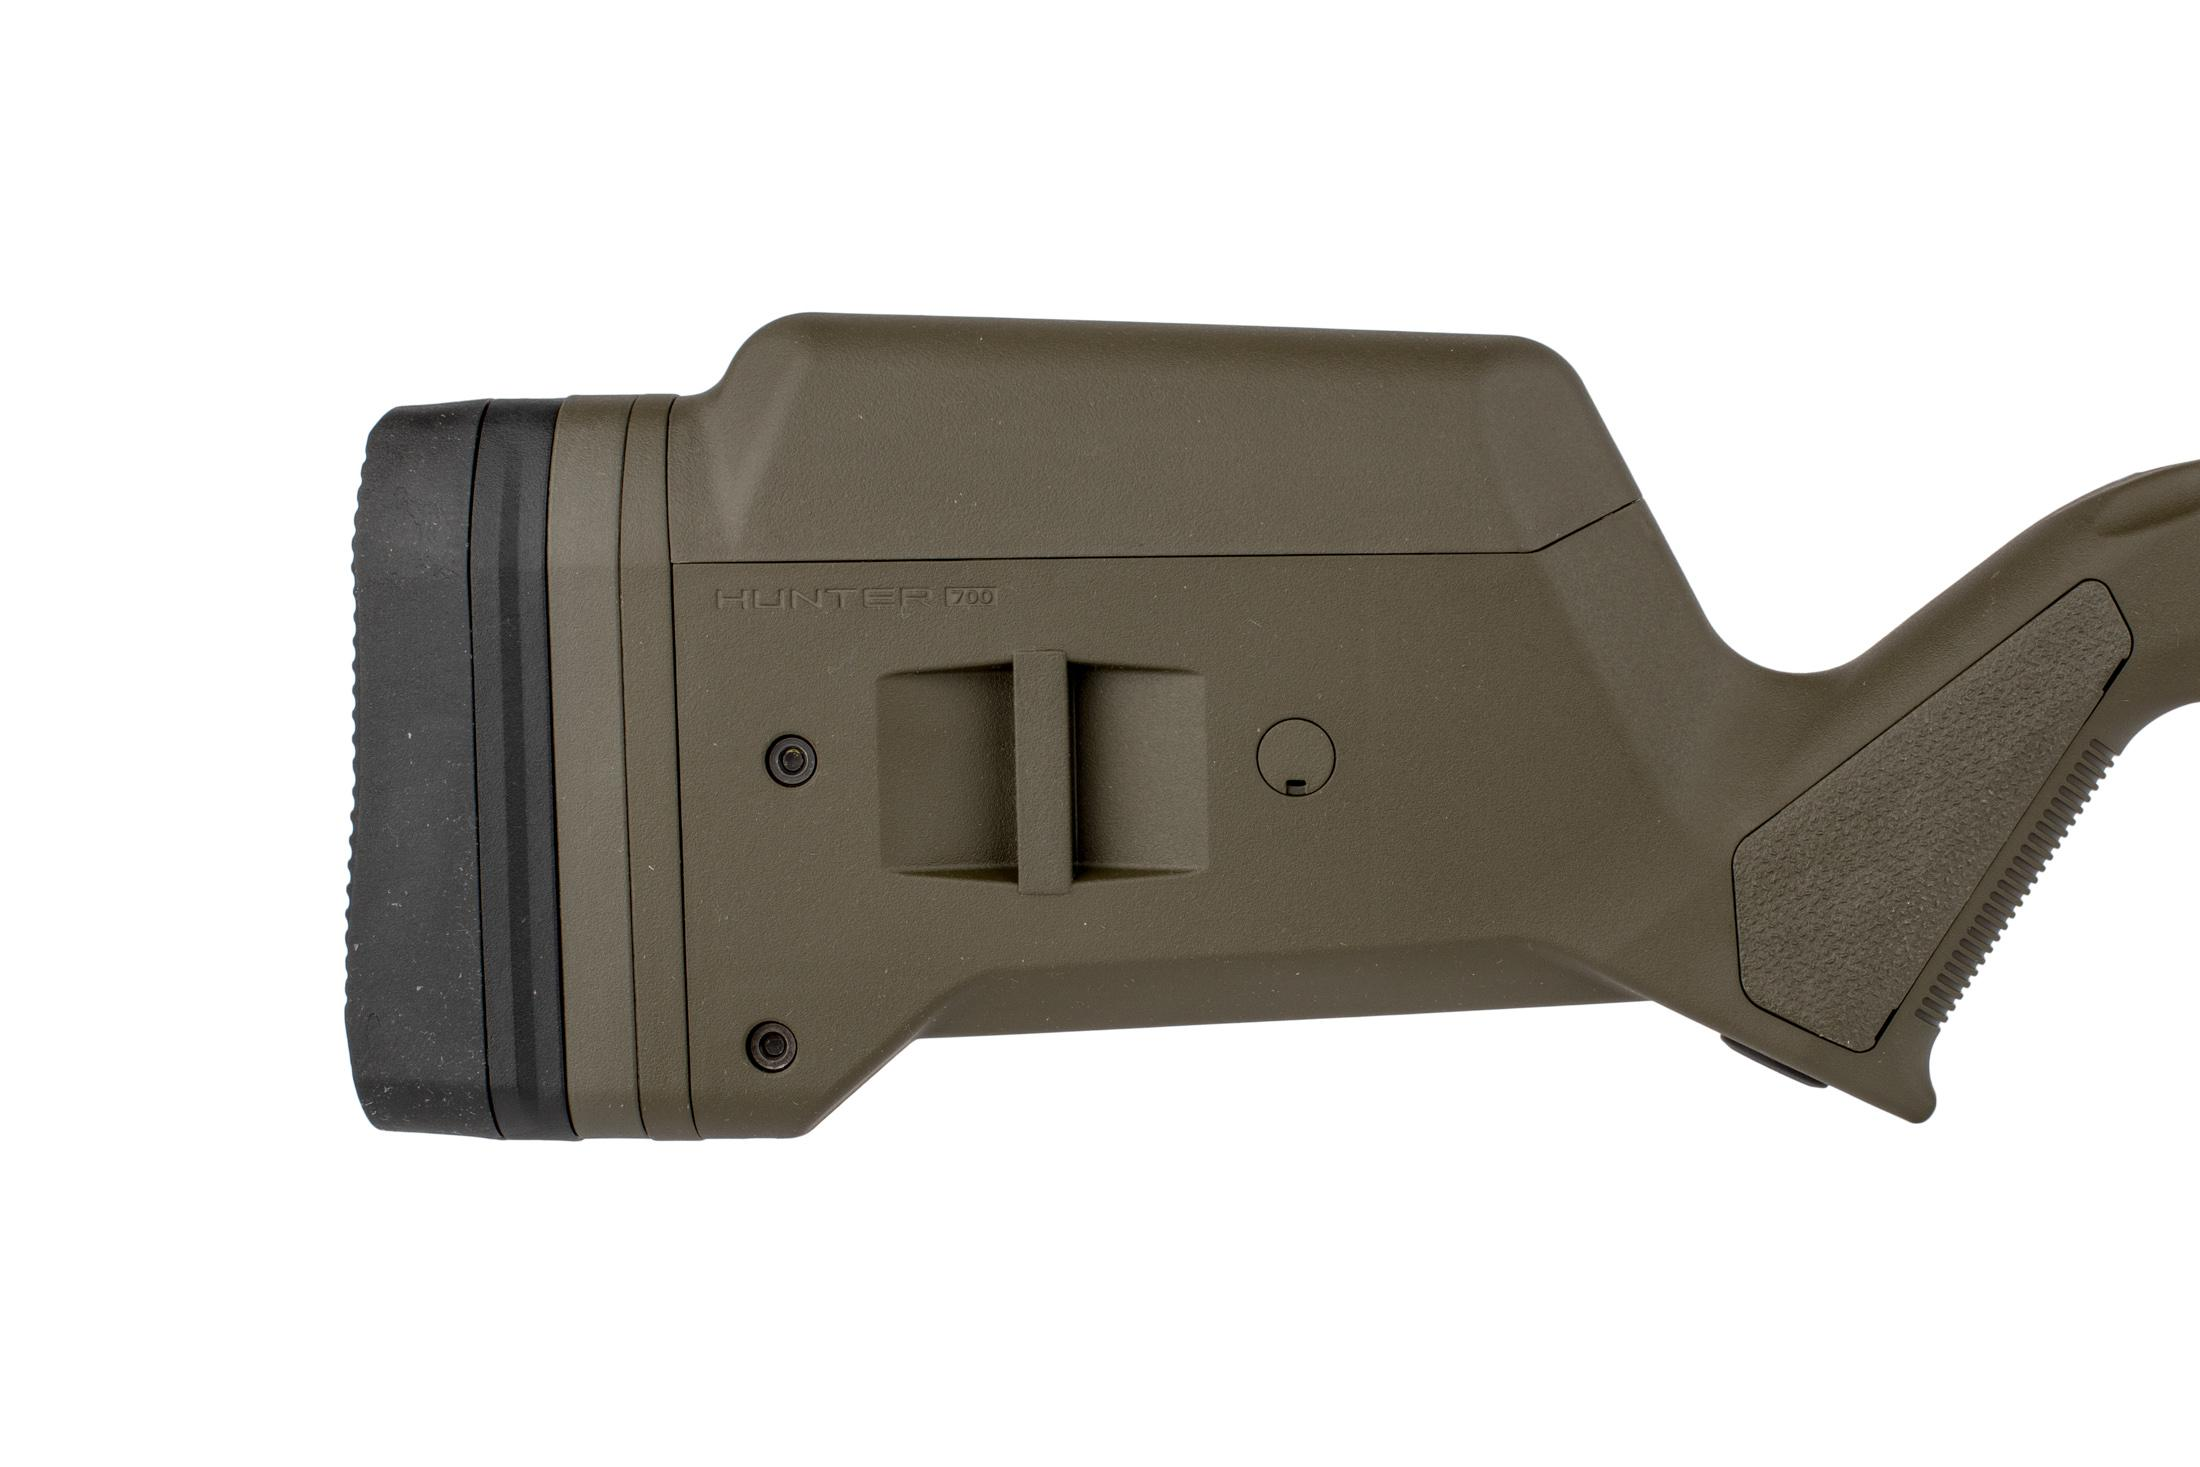 Magpul olive drab green Hunter 700L stock offers adjustable length of pull and cheek reisers for an optimal fit